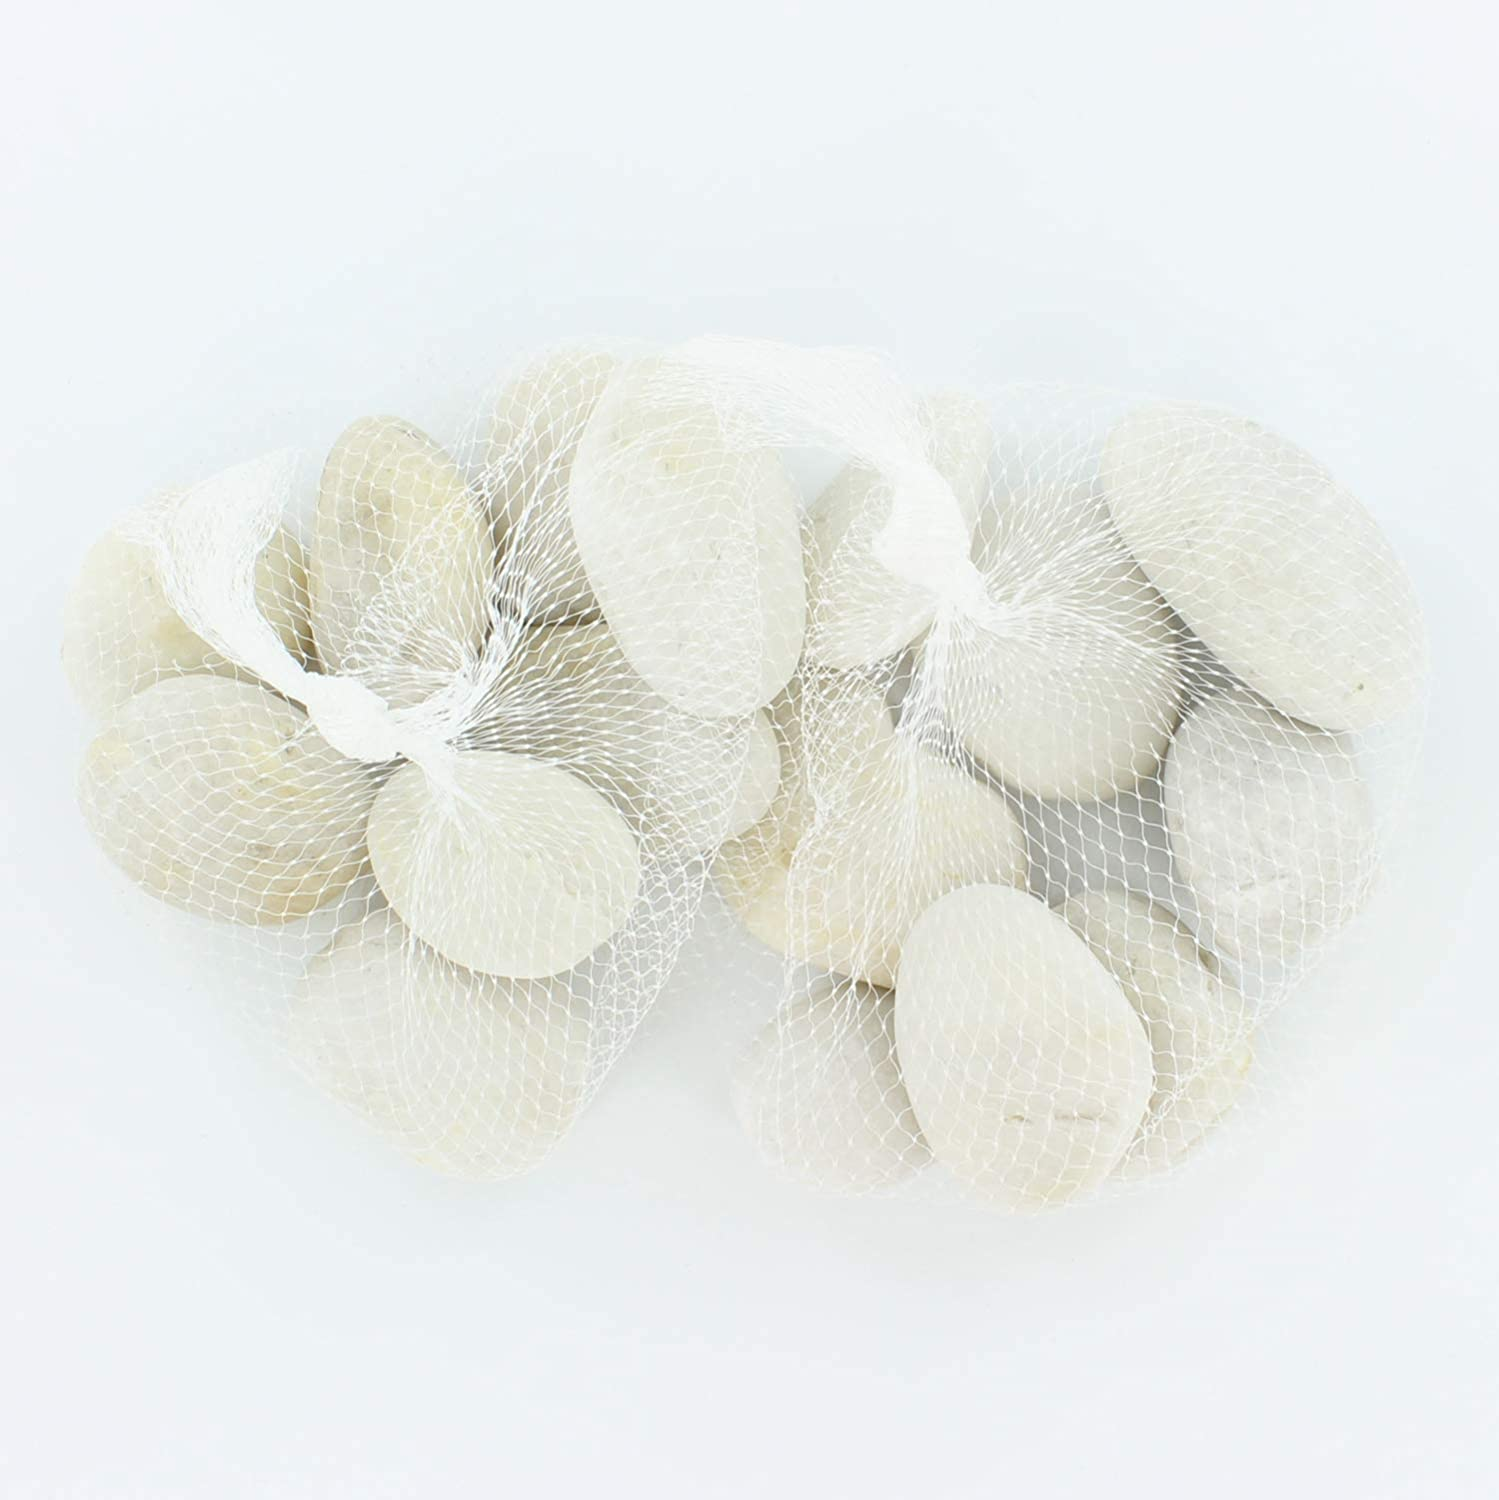 Smooth Stones with Flat Surface for Arts and Crafts White Rocks for Painting and Painting Kindness Rocks 2 to 3.5 inches in Length Set of 16